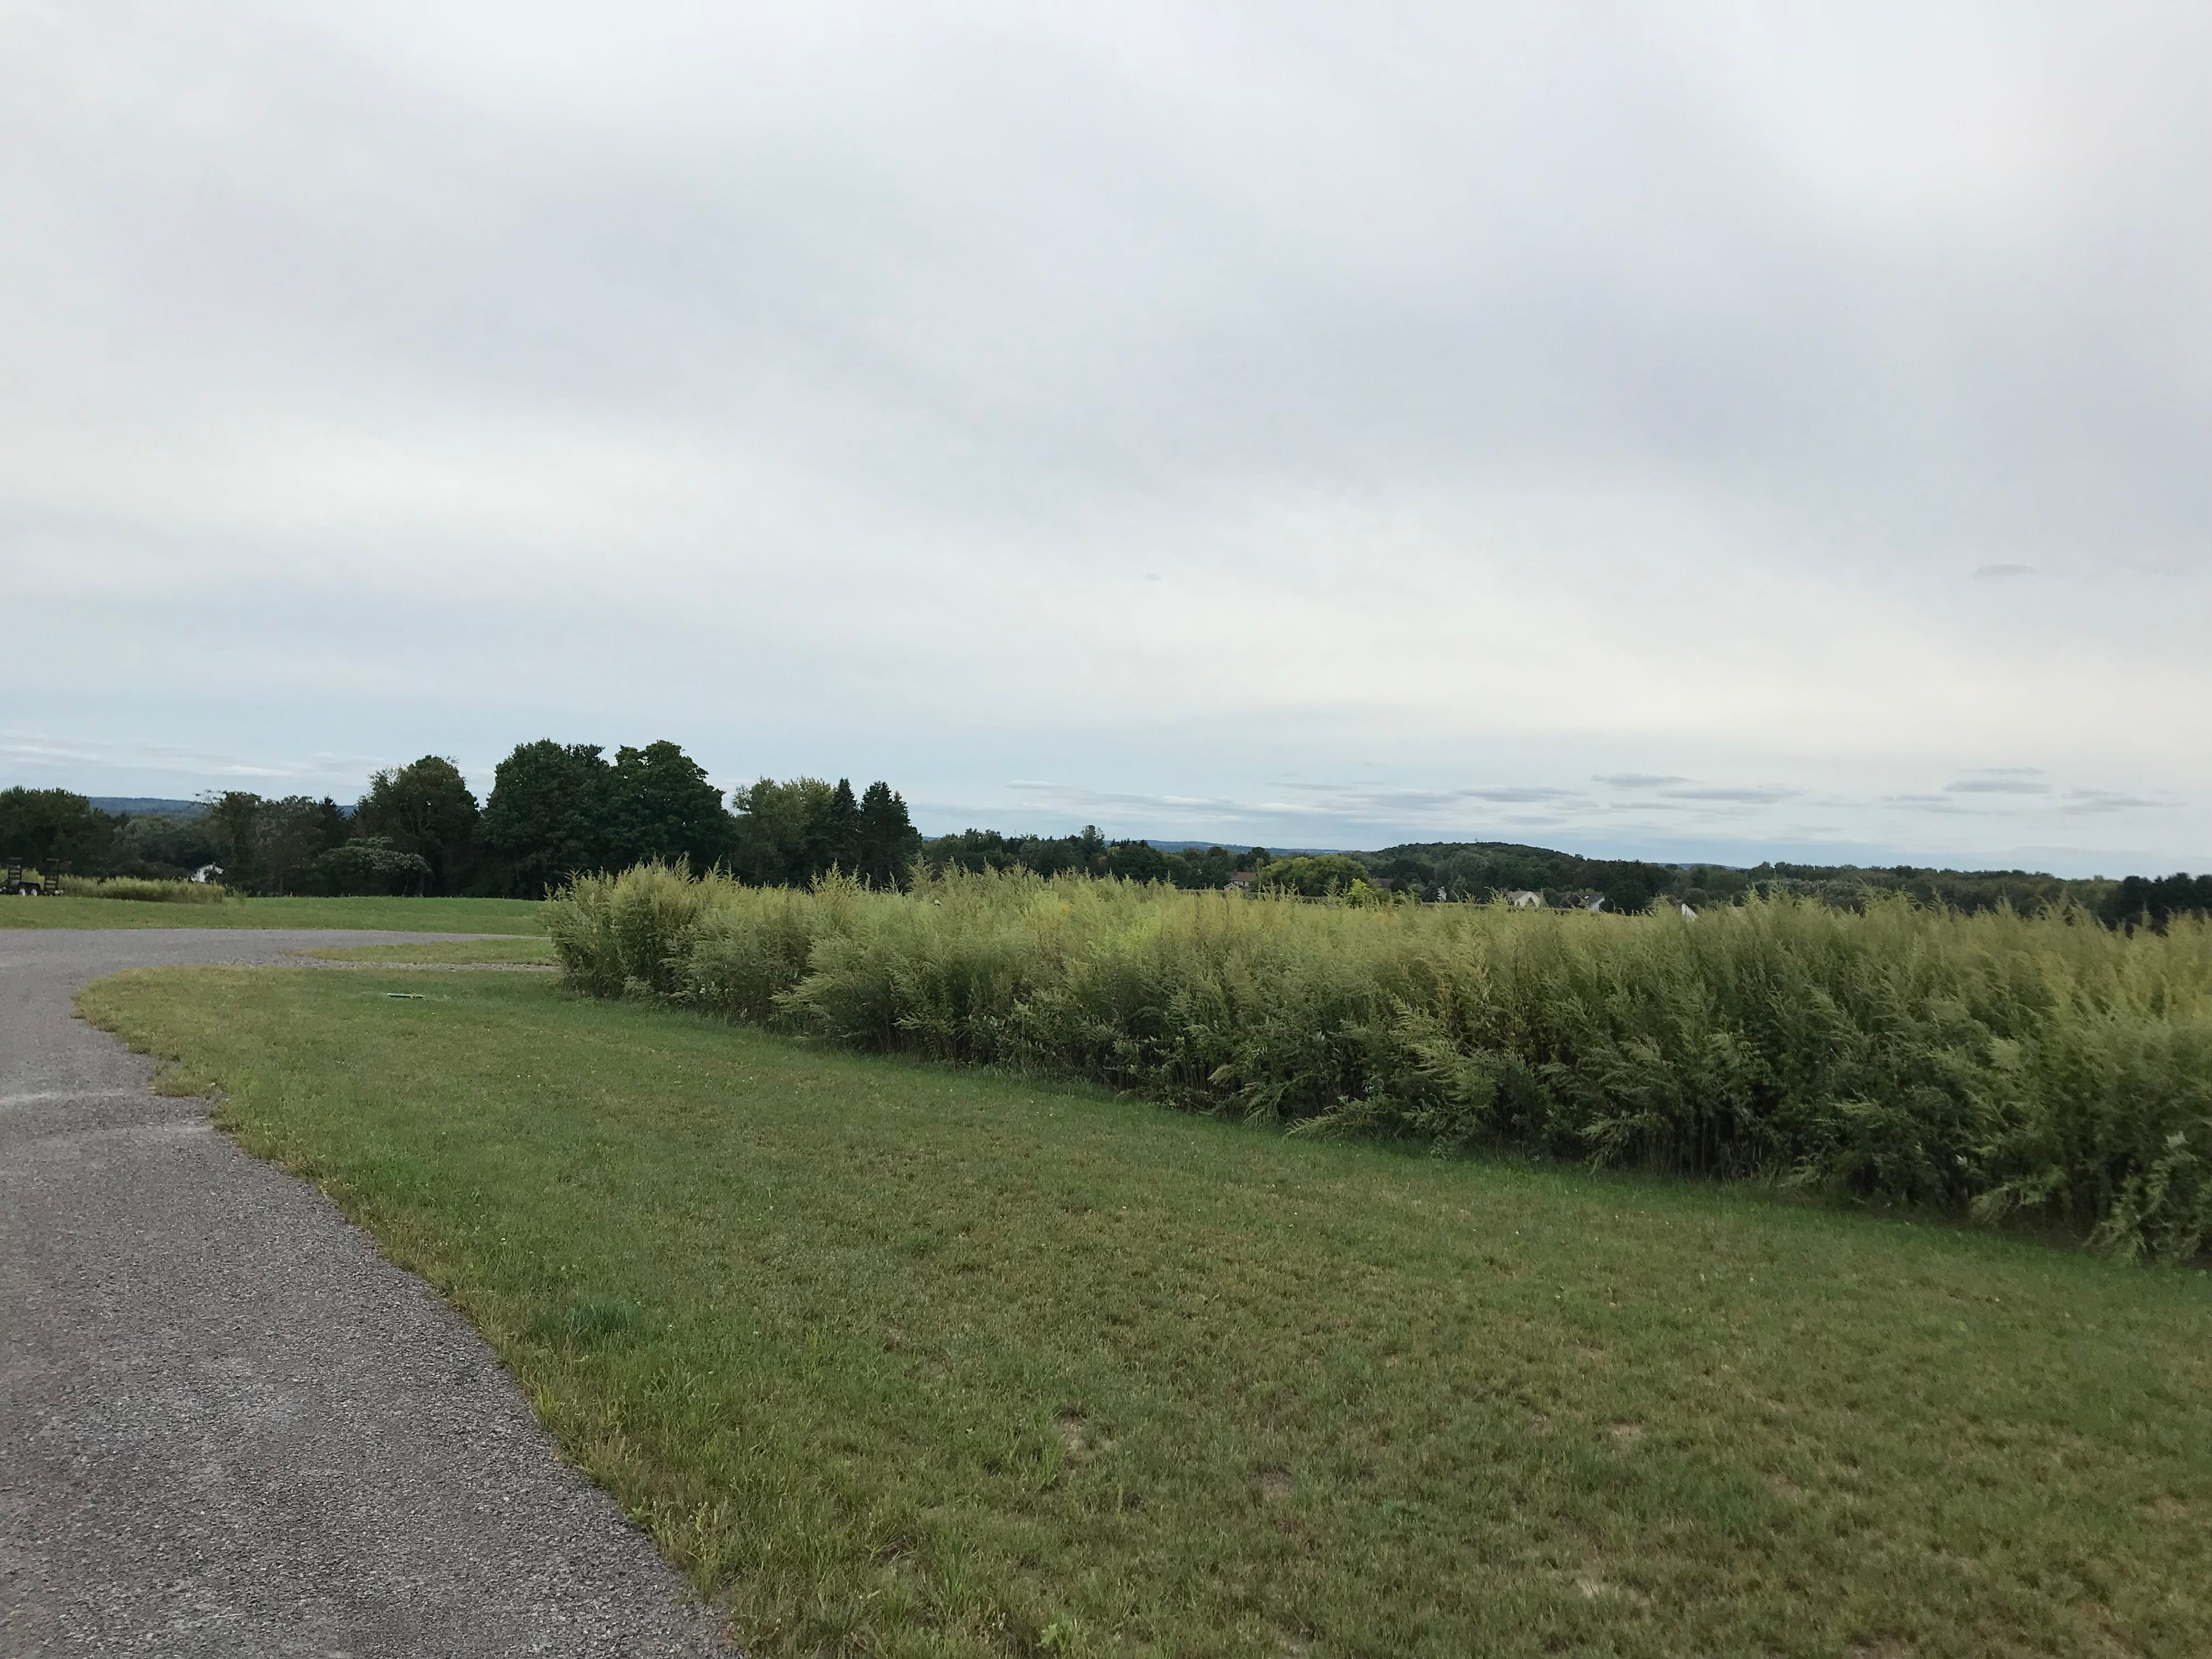 One of the views from the top of the hill at Oak & Apple Cidery in Penfield.